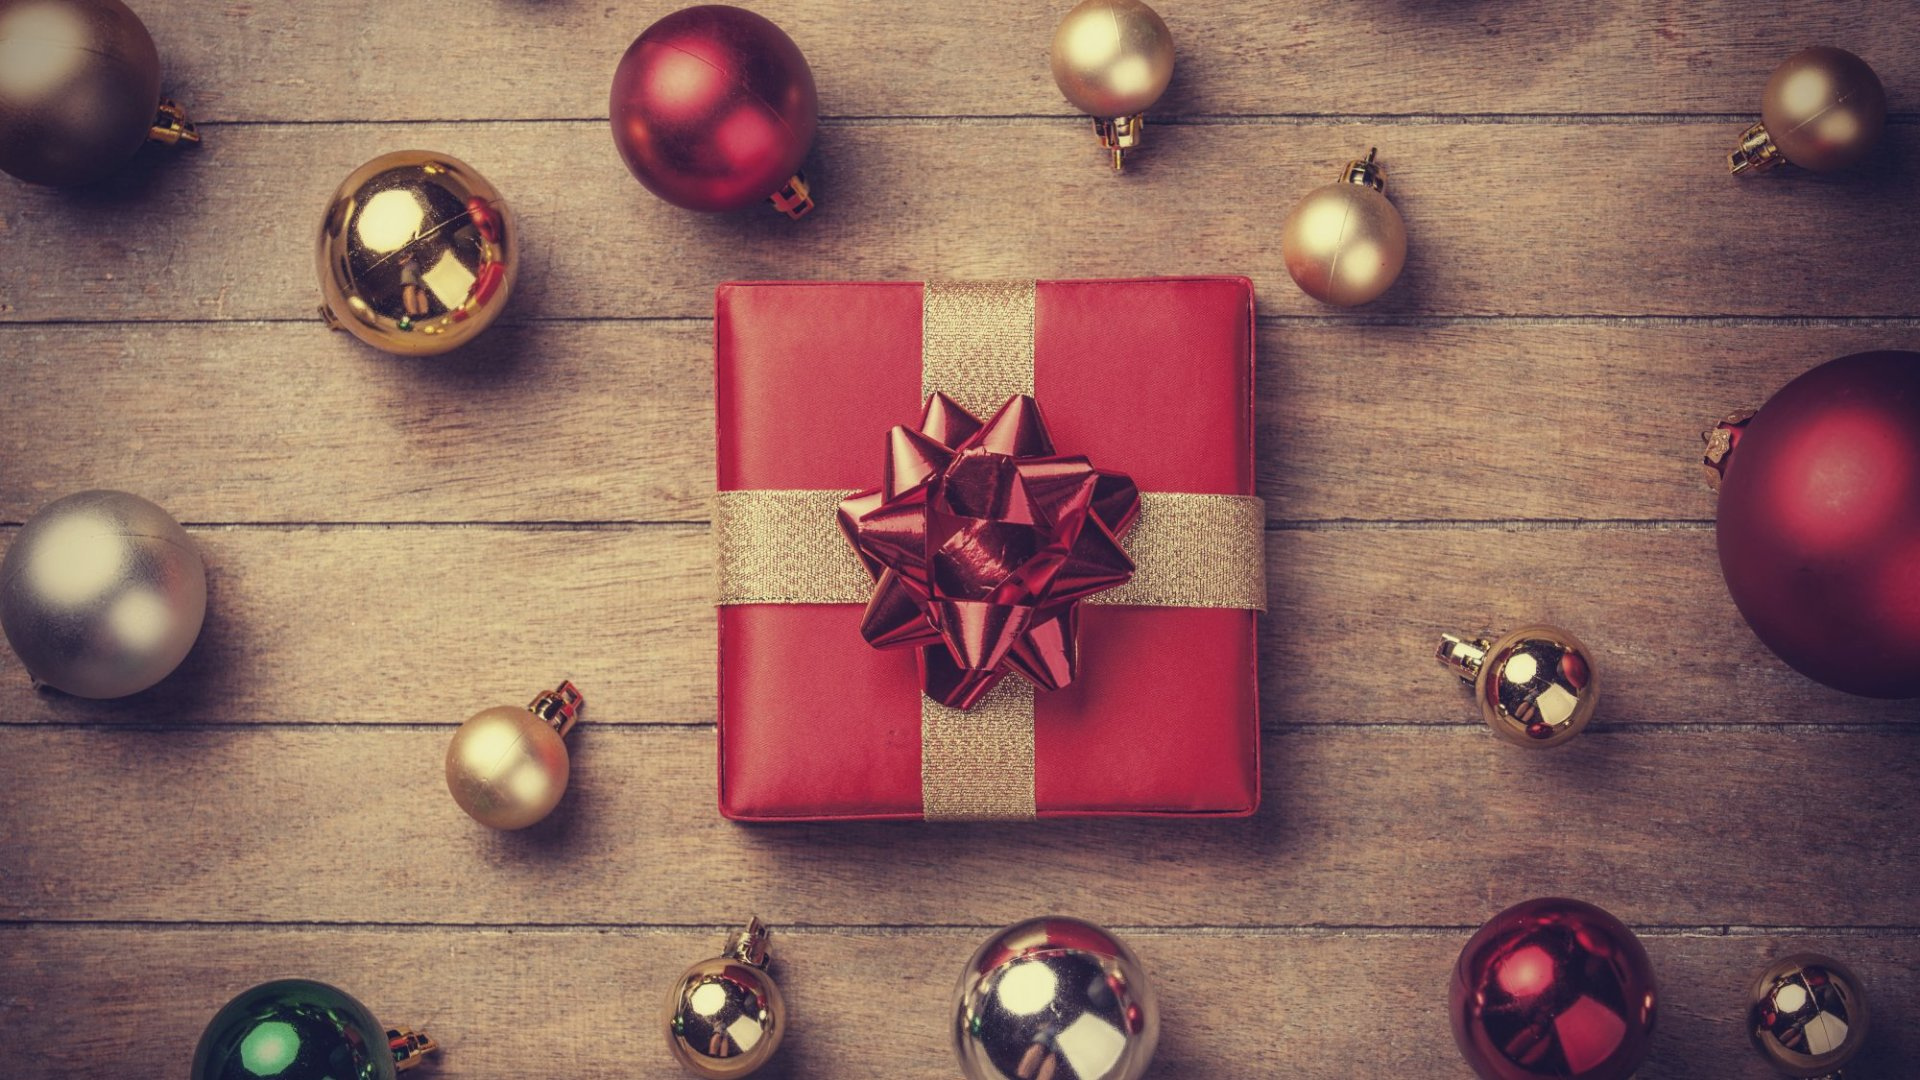 2015 Forecast Points to Happy Holidays for Retailers